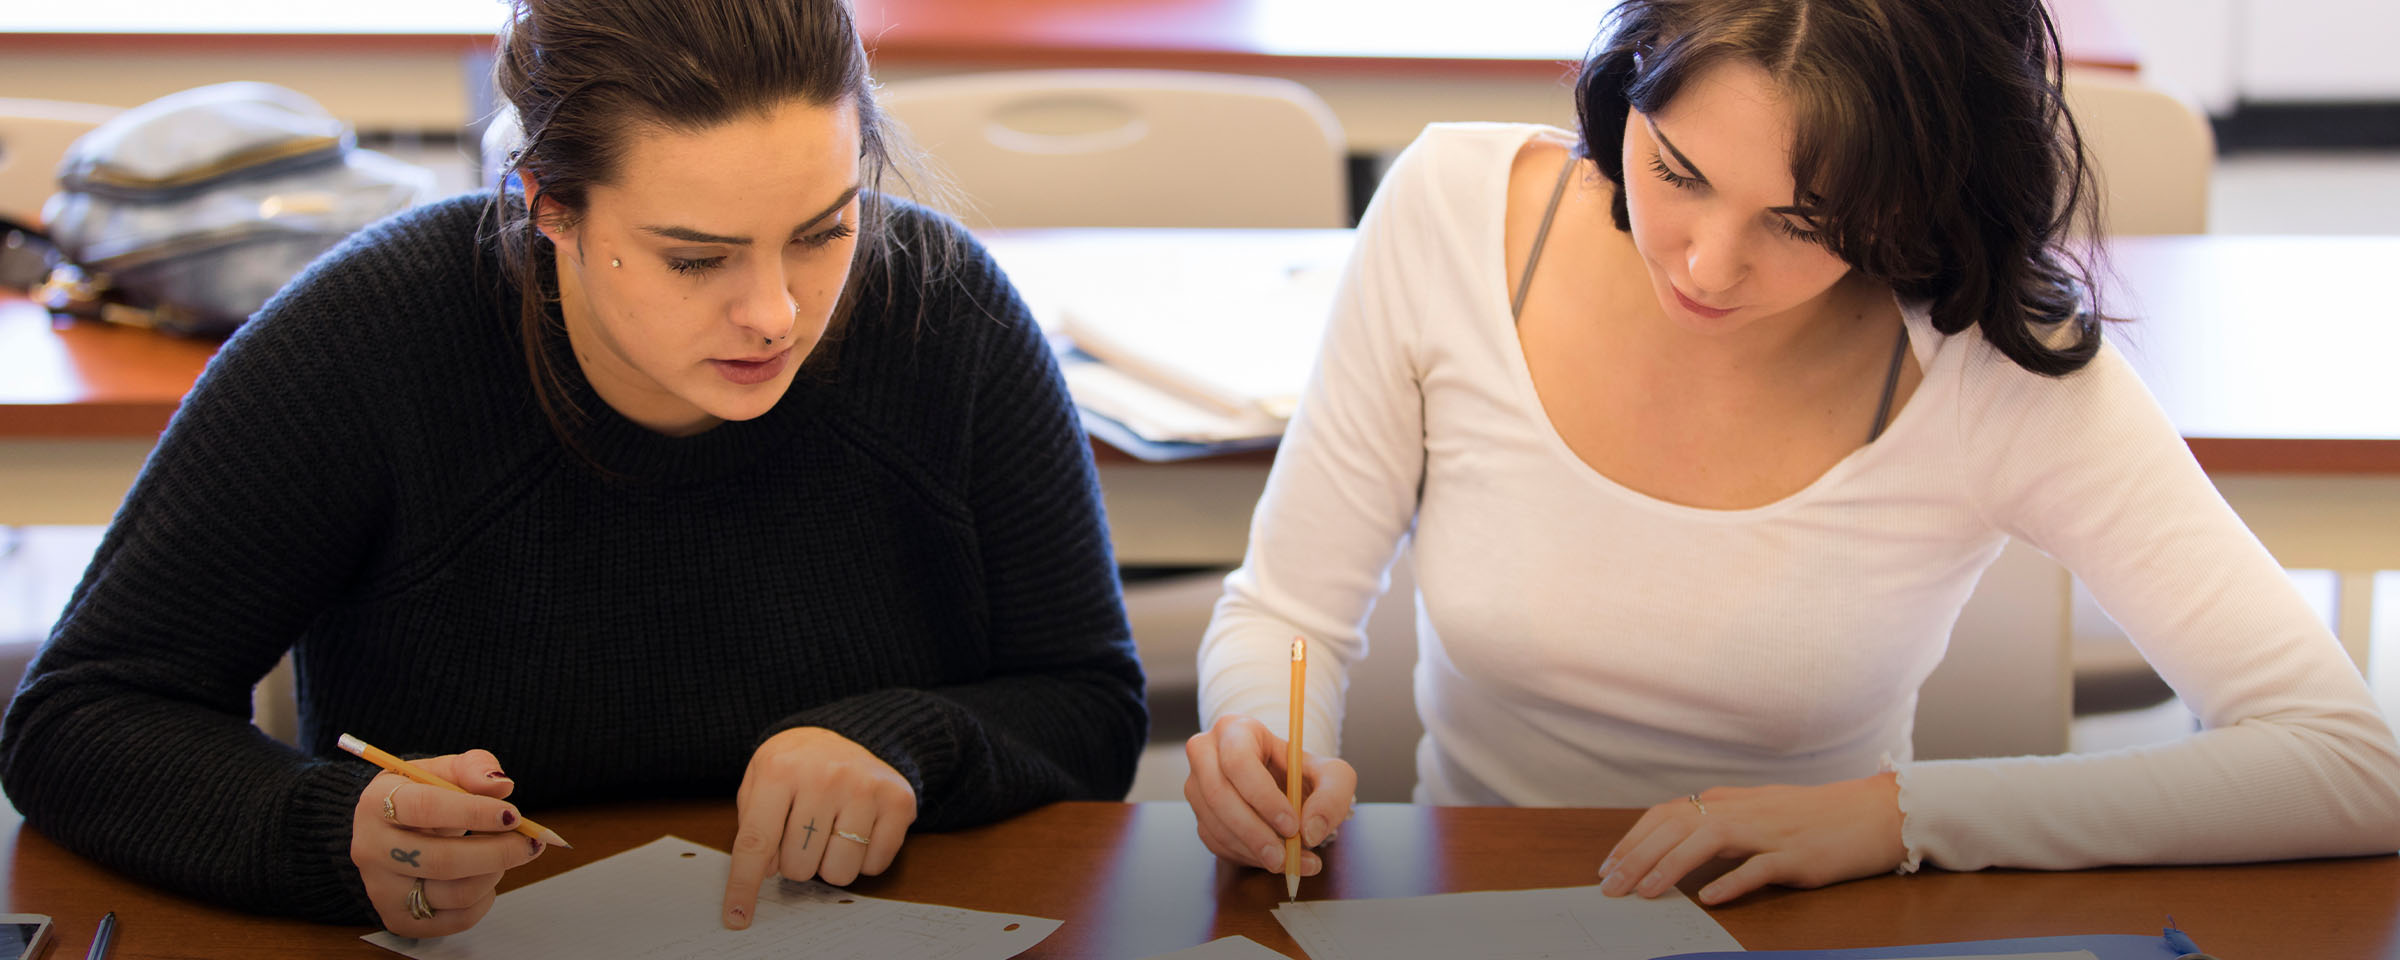 Female students working in classroom